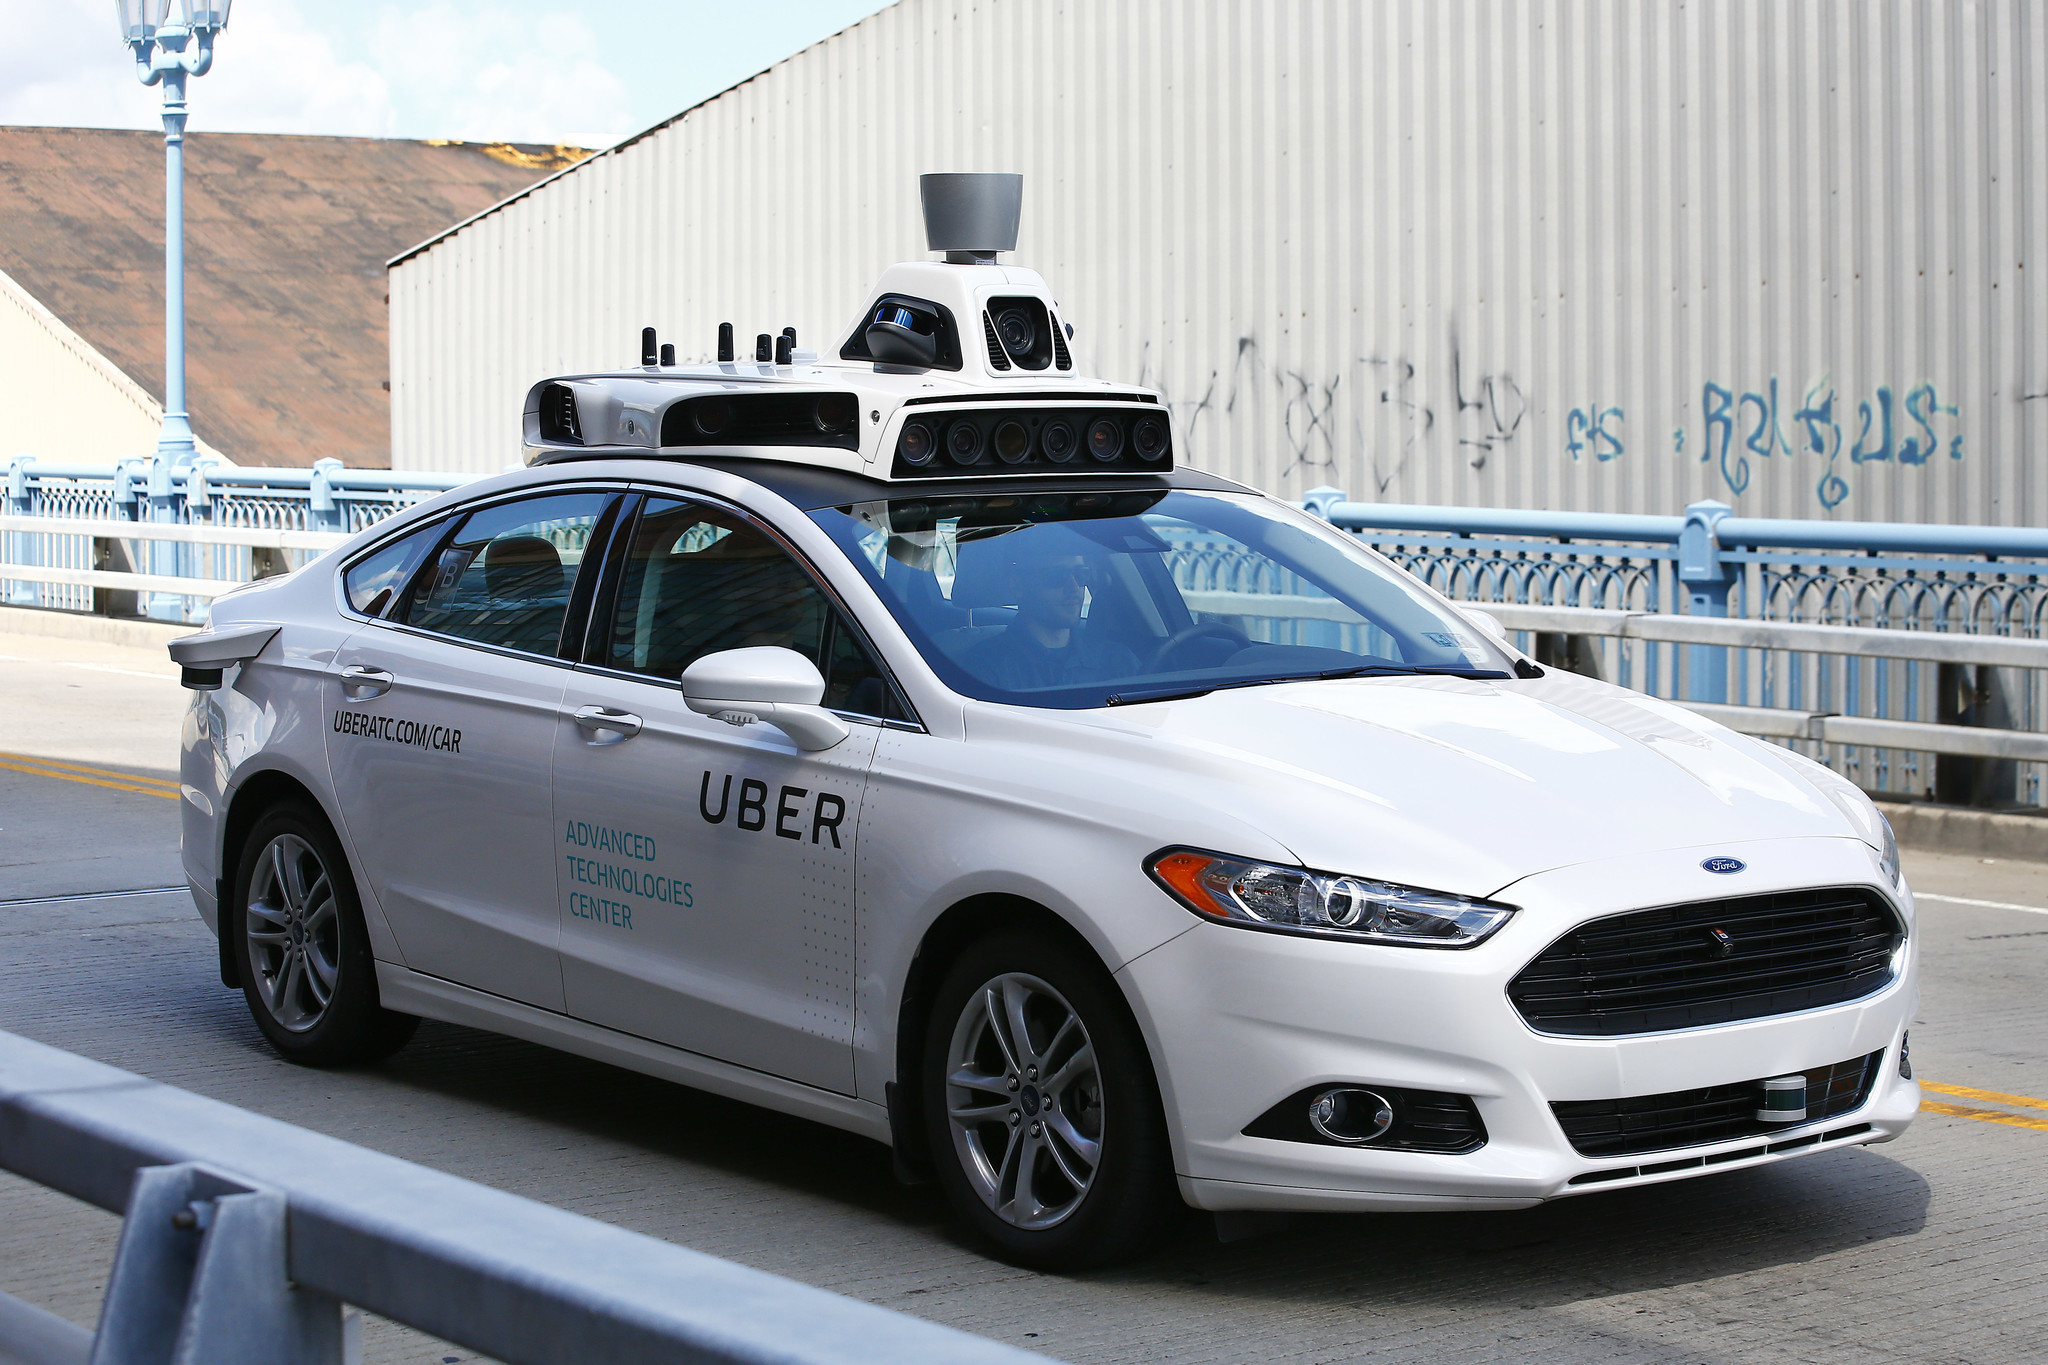 driverless cars could be banned by chicago city council chicago tribune. Black Bedroom Furniture Sets. Home Design Ideas